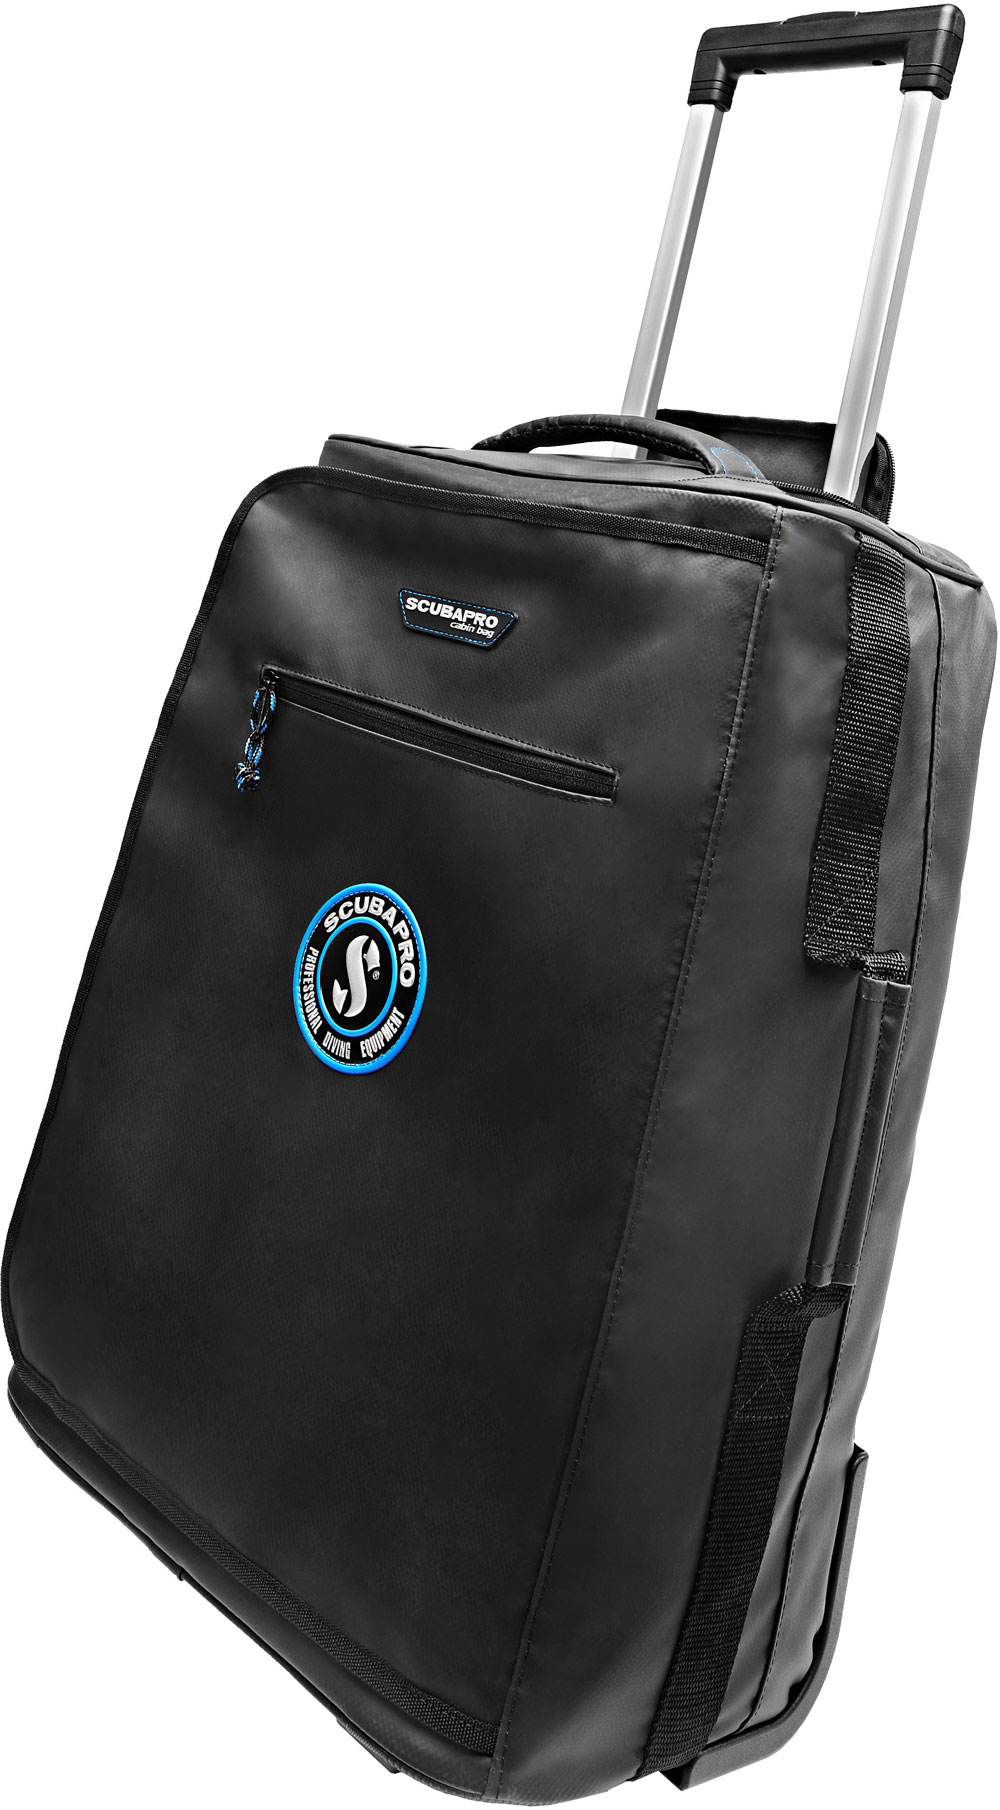 holdall for cabins bag carry luggage second easyjet on car maximum lightweight cabin spinner set ryanair super hand approved bags suitcase max both piece product wheel aerolite en black